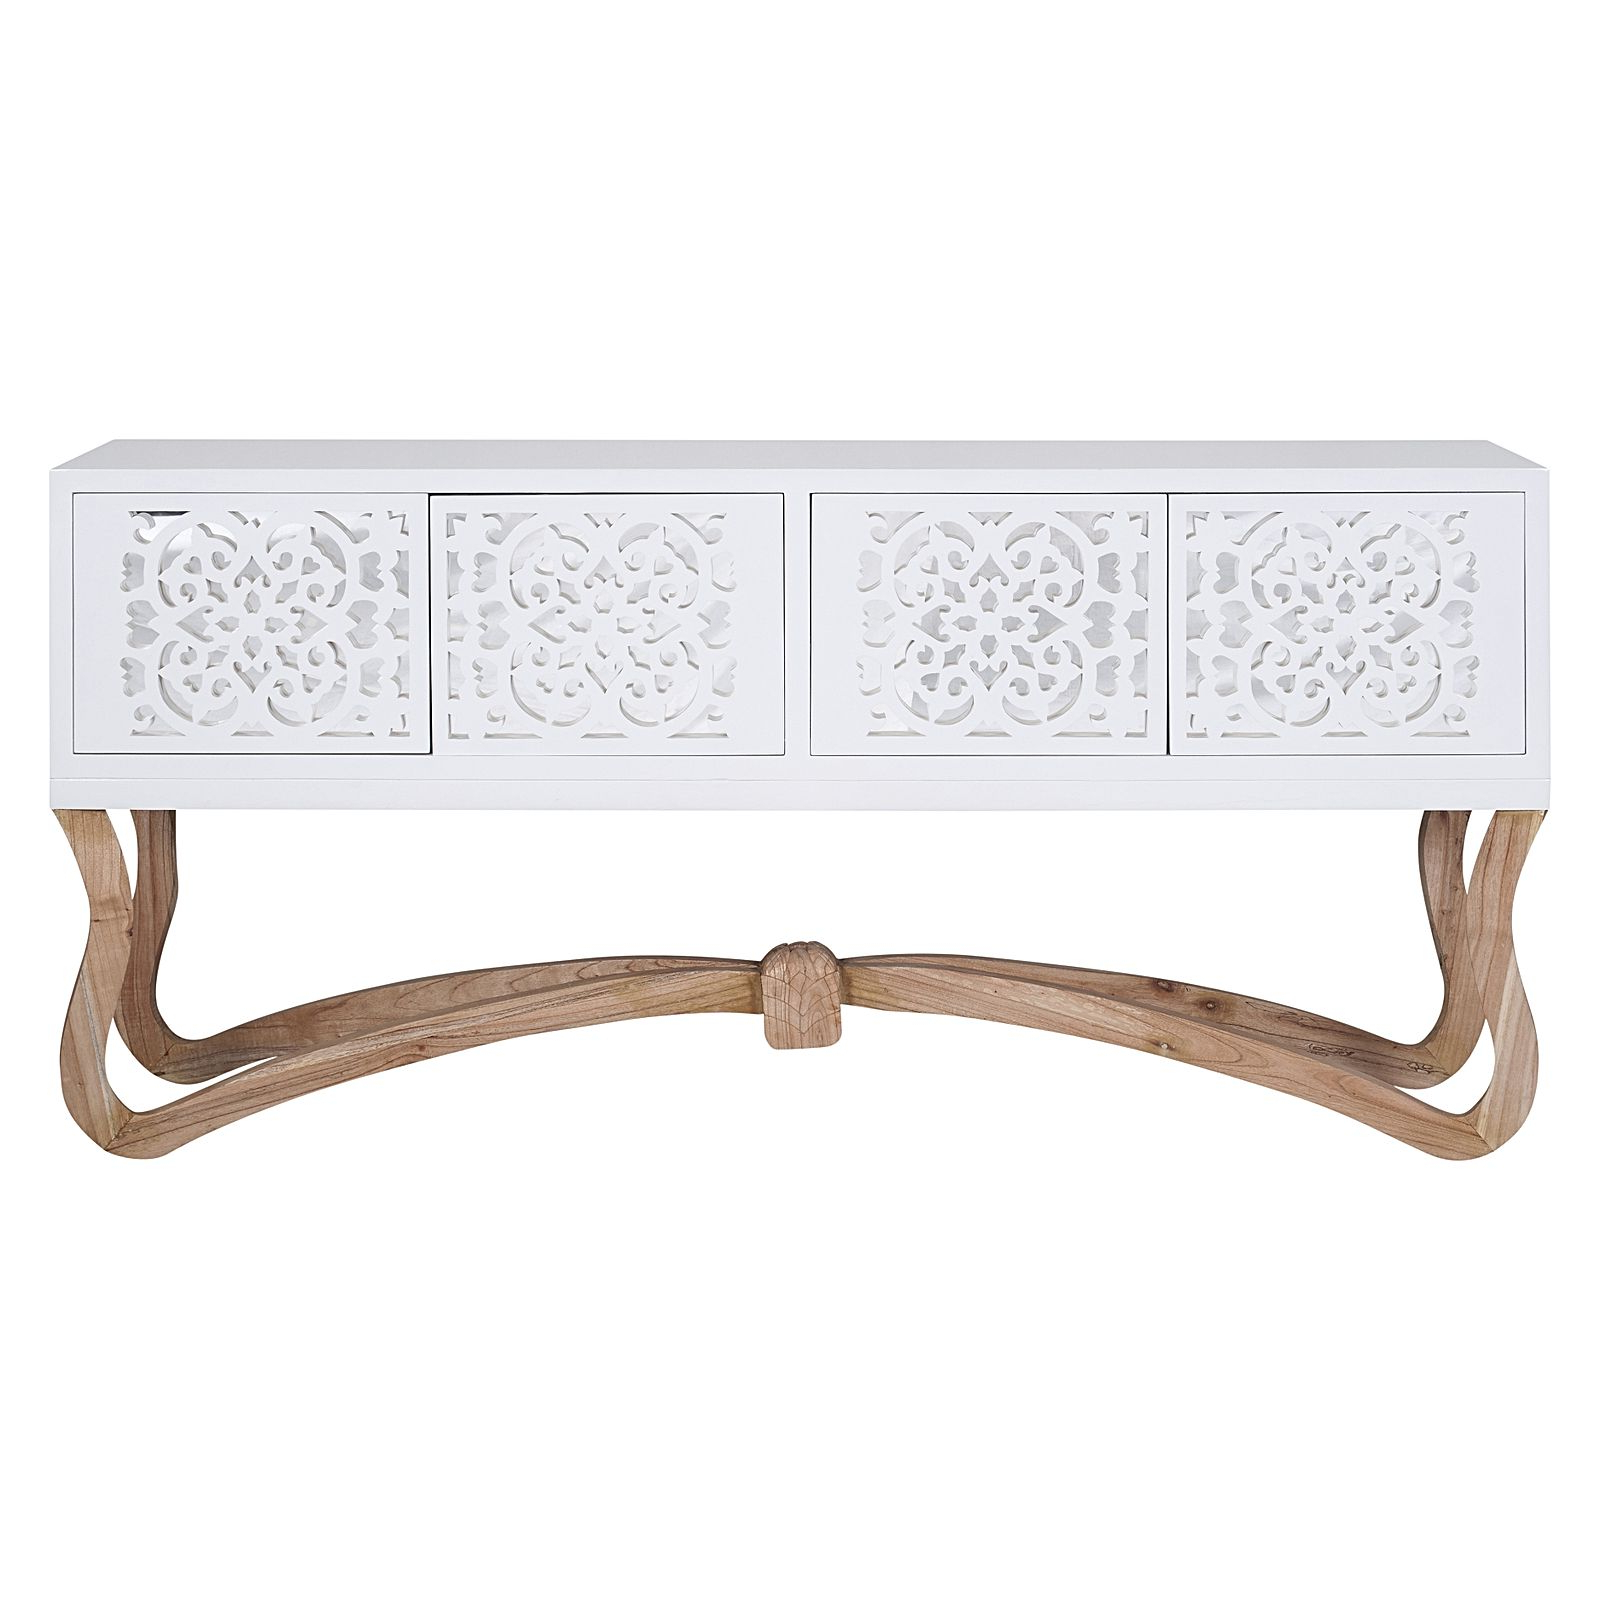 2020 Sienna Sideboards With Regard To Sienna Sideboard, White, Large (View 12 of 20)